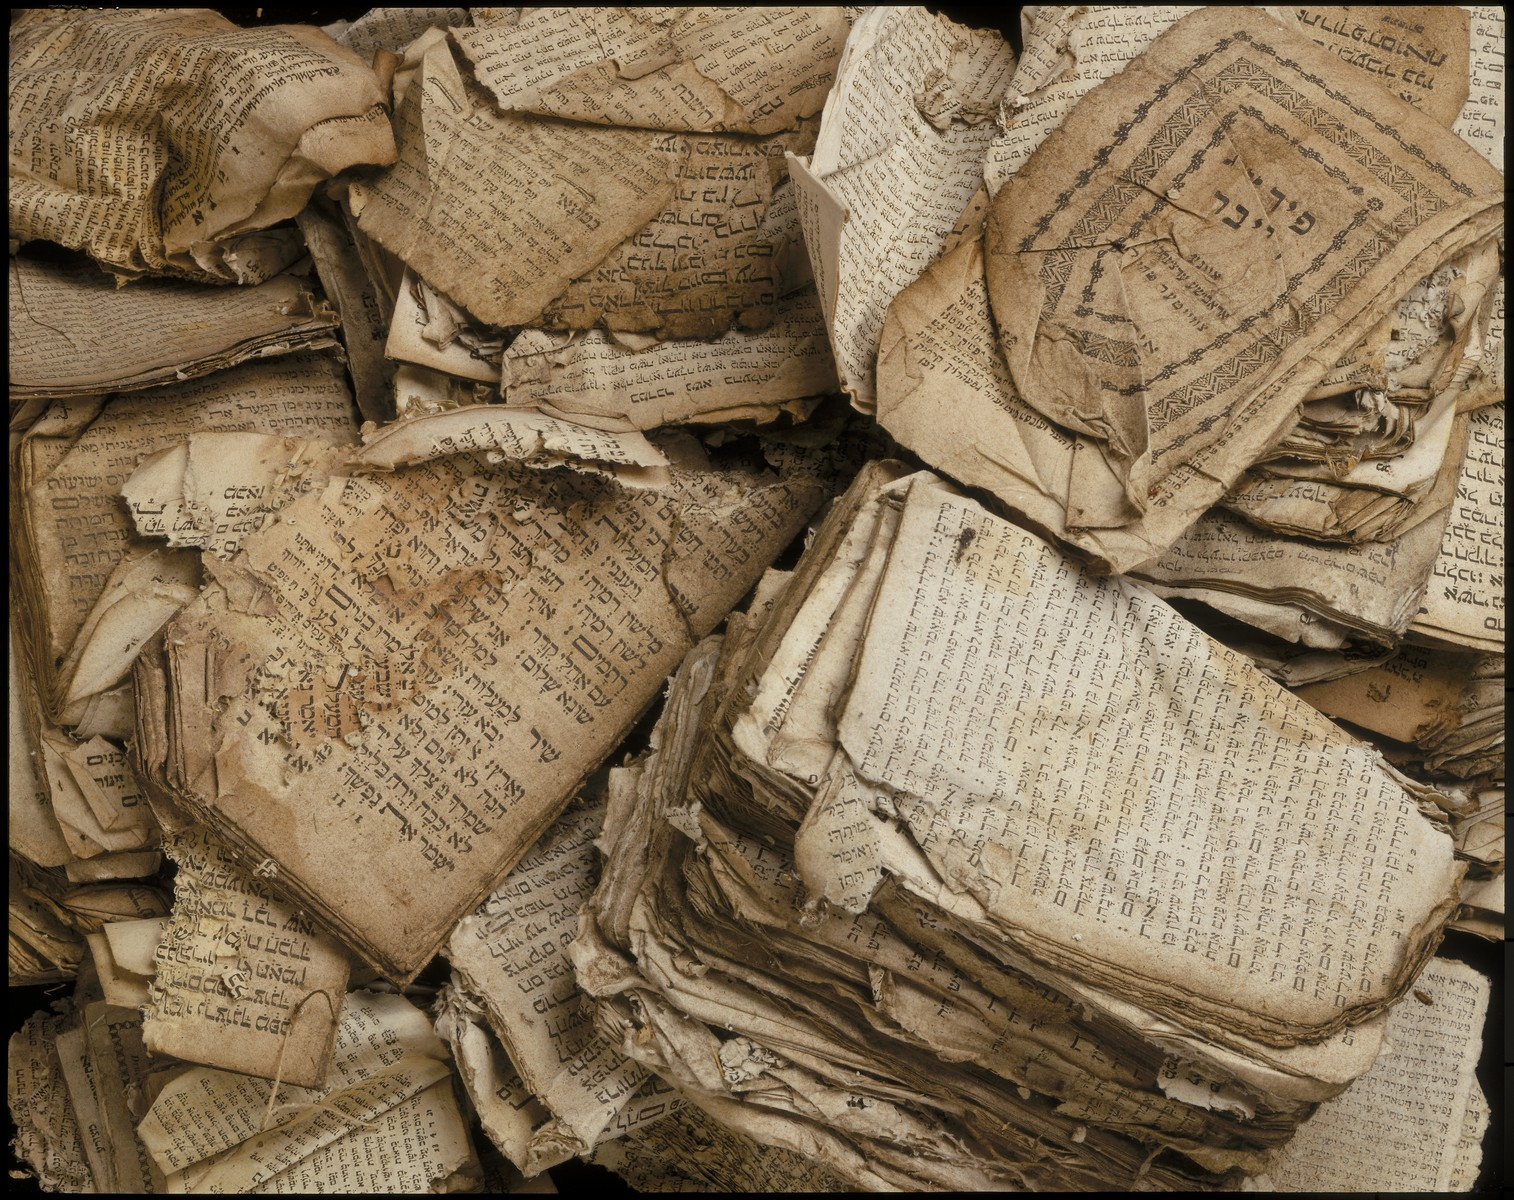 A pile of Hebrew prayerbooks and other Jewish religious texts damaged by fire at the synagogue in Bobenhausen II, District Vogelsberg, during Kristallnacht.